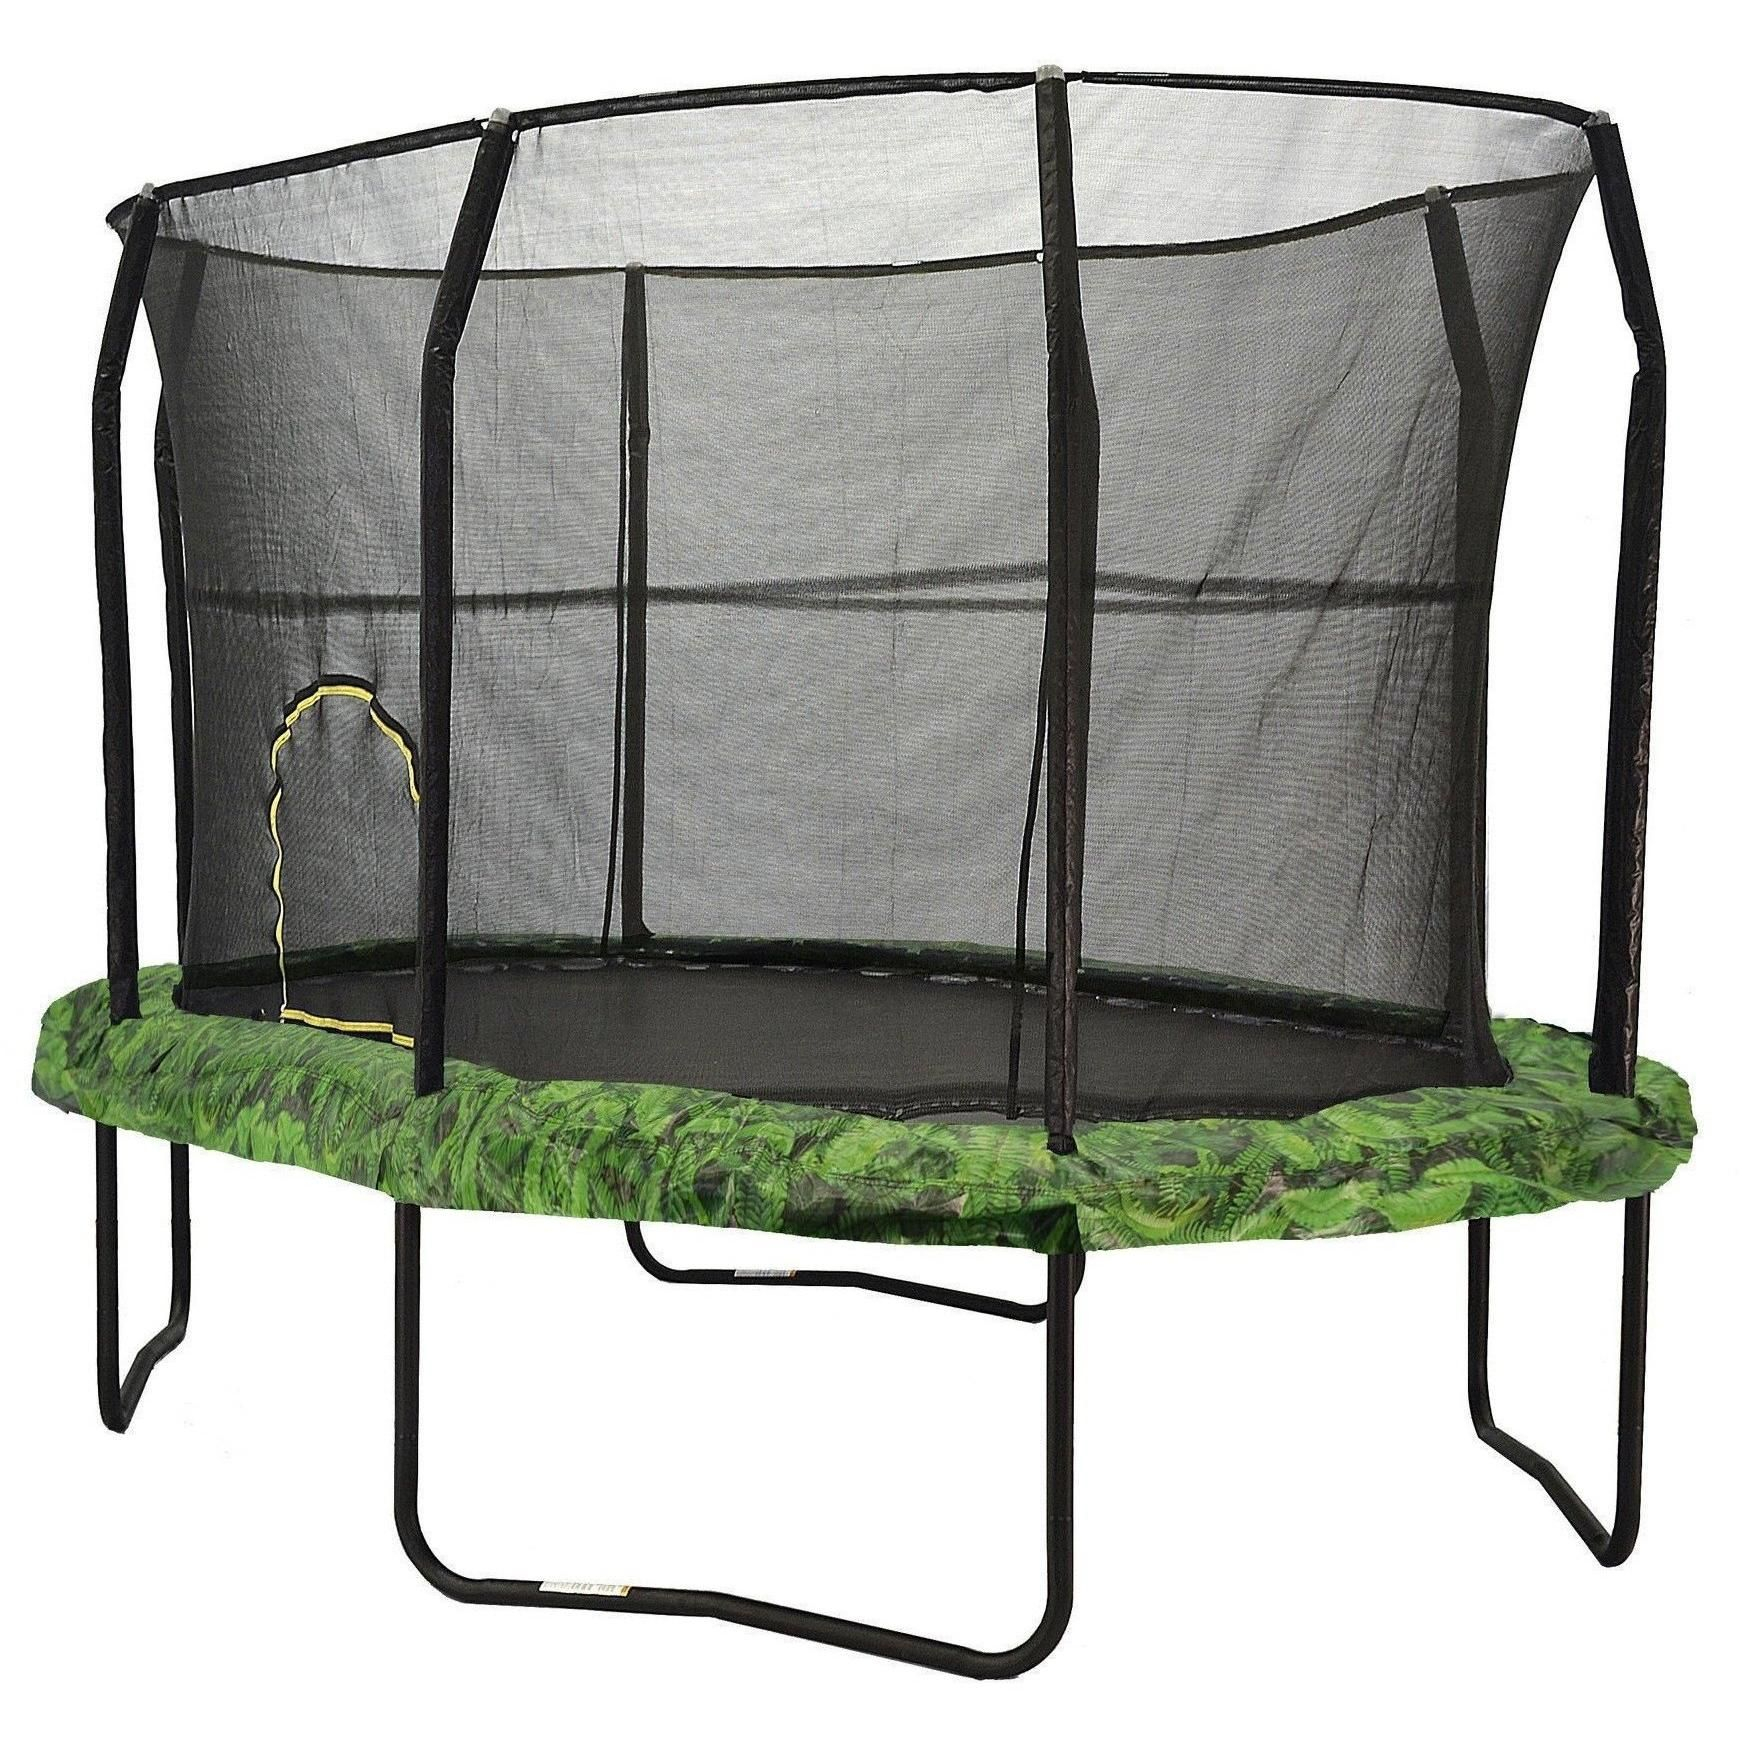 8x12 Oval Trampoline With Enclosure Fern Oval Trampoline Trampoline Backyard Trampoline